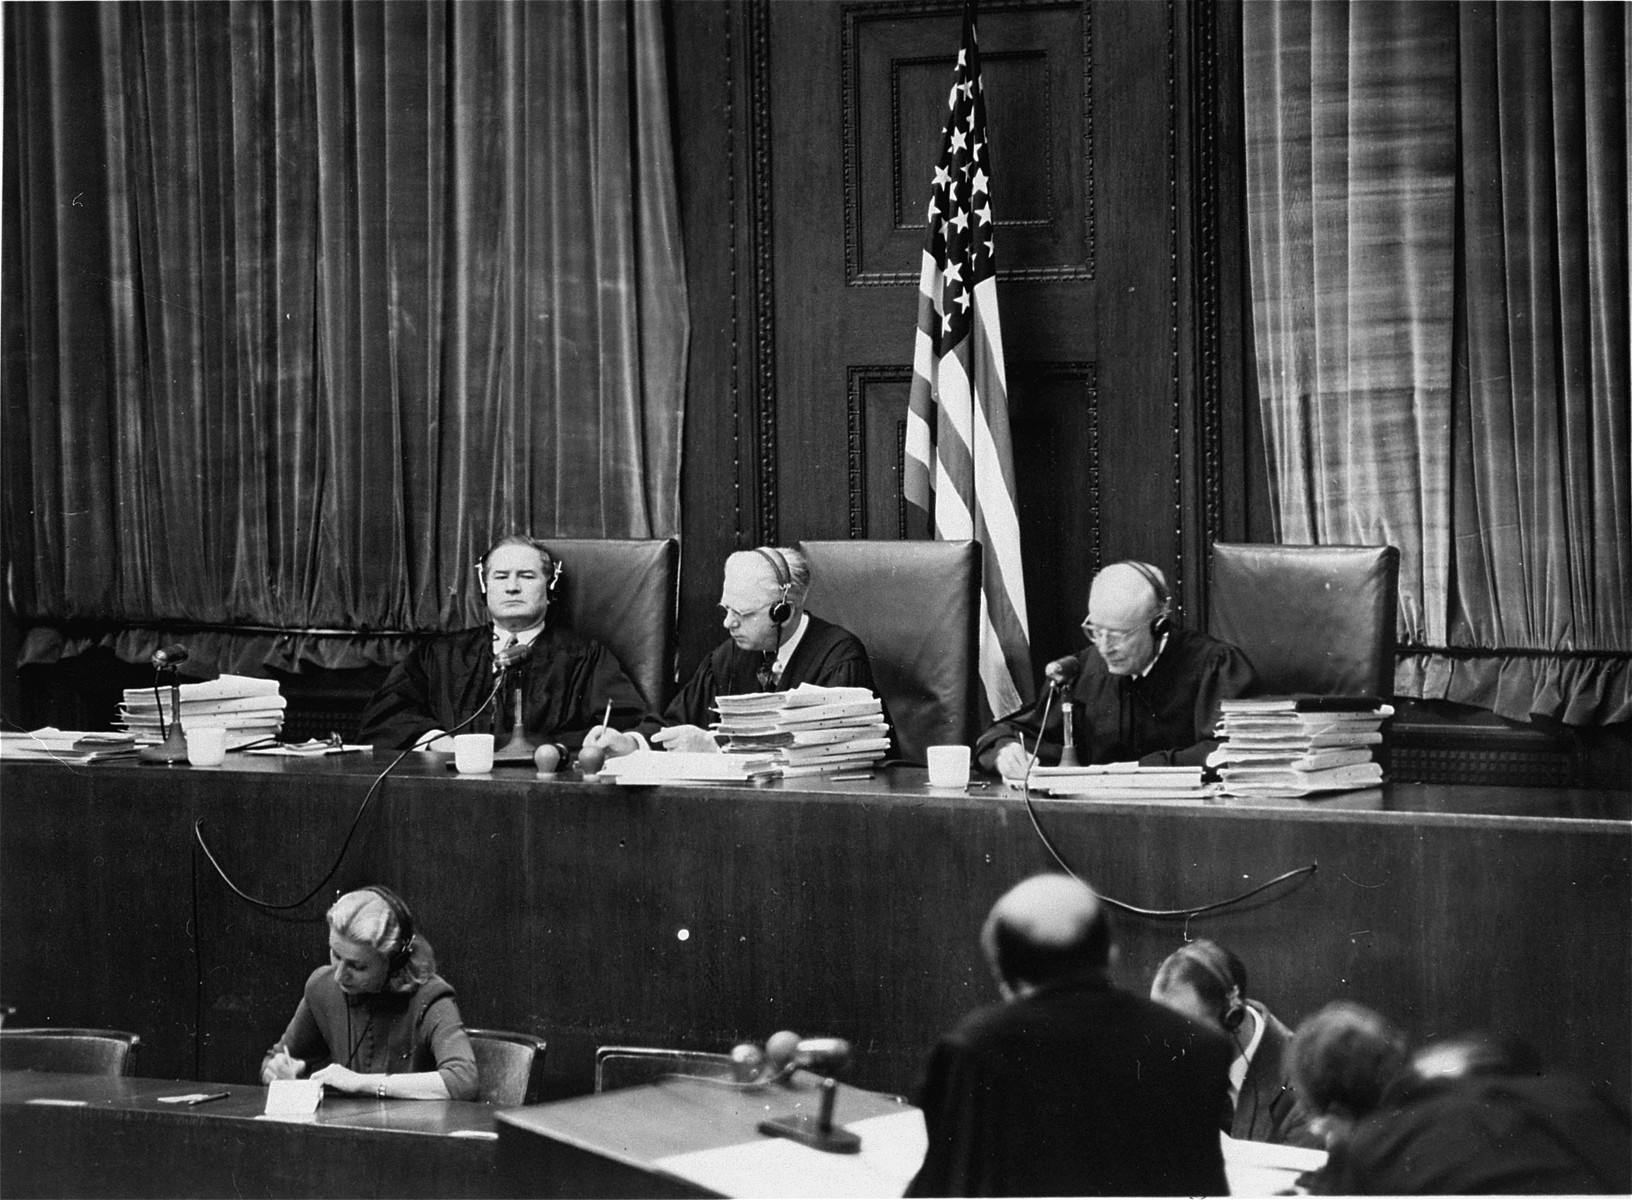 The members of the Tribunal at the Ministries Trial.  Seated from left to right are Leon W. Powers, Presiding Justice William C. Christianson, and Robert T. Maguire.